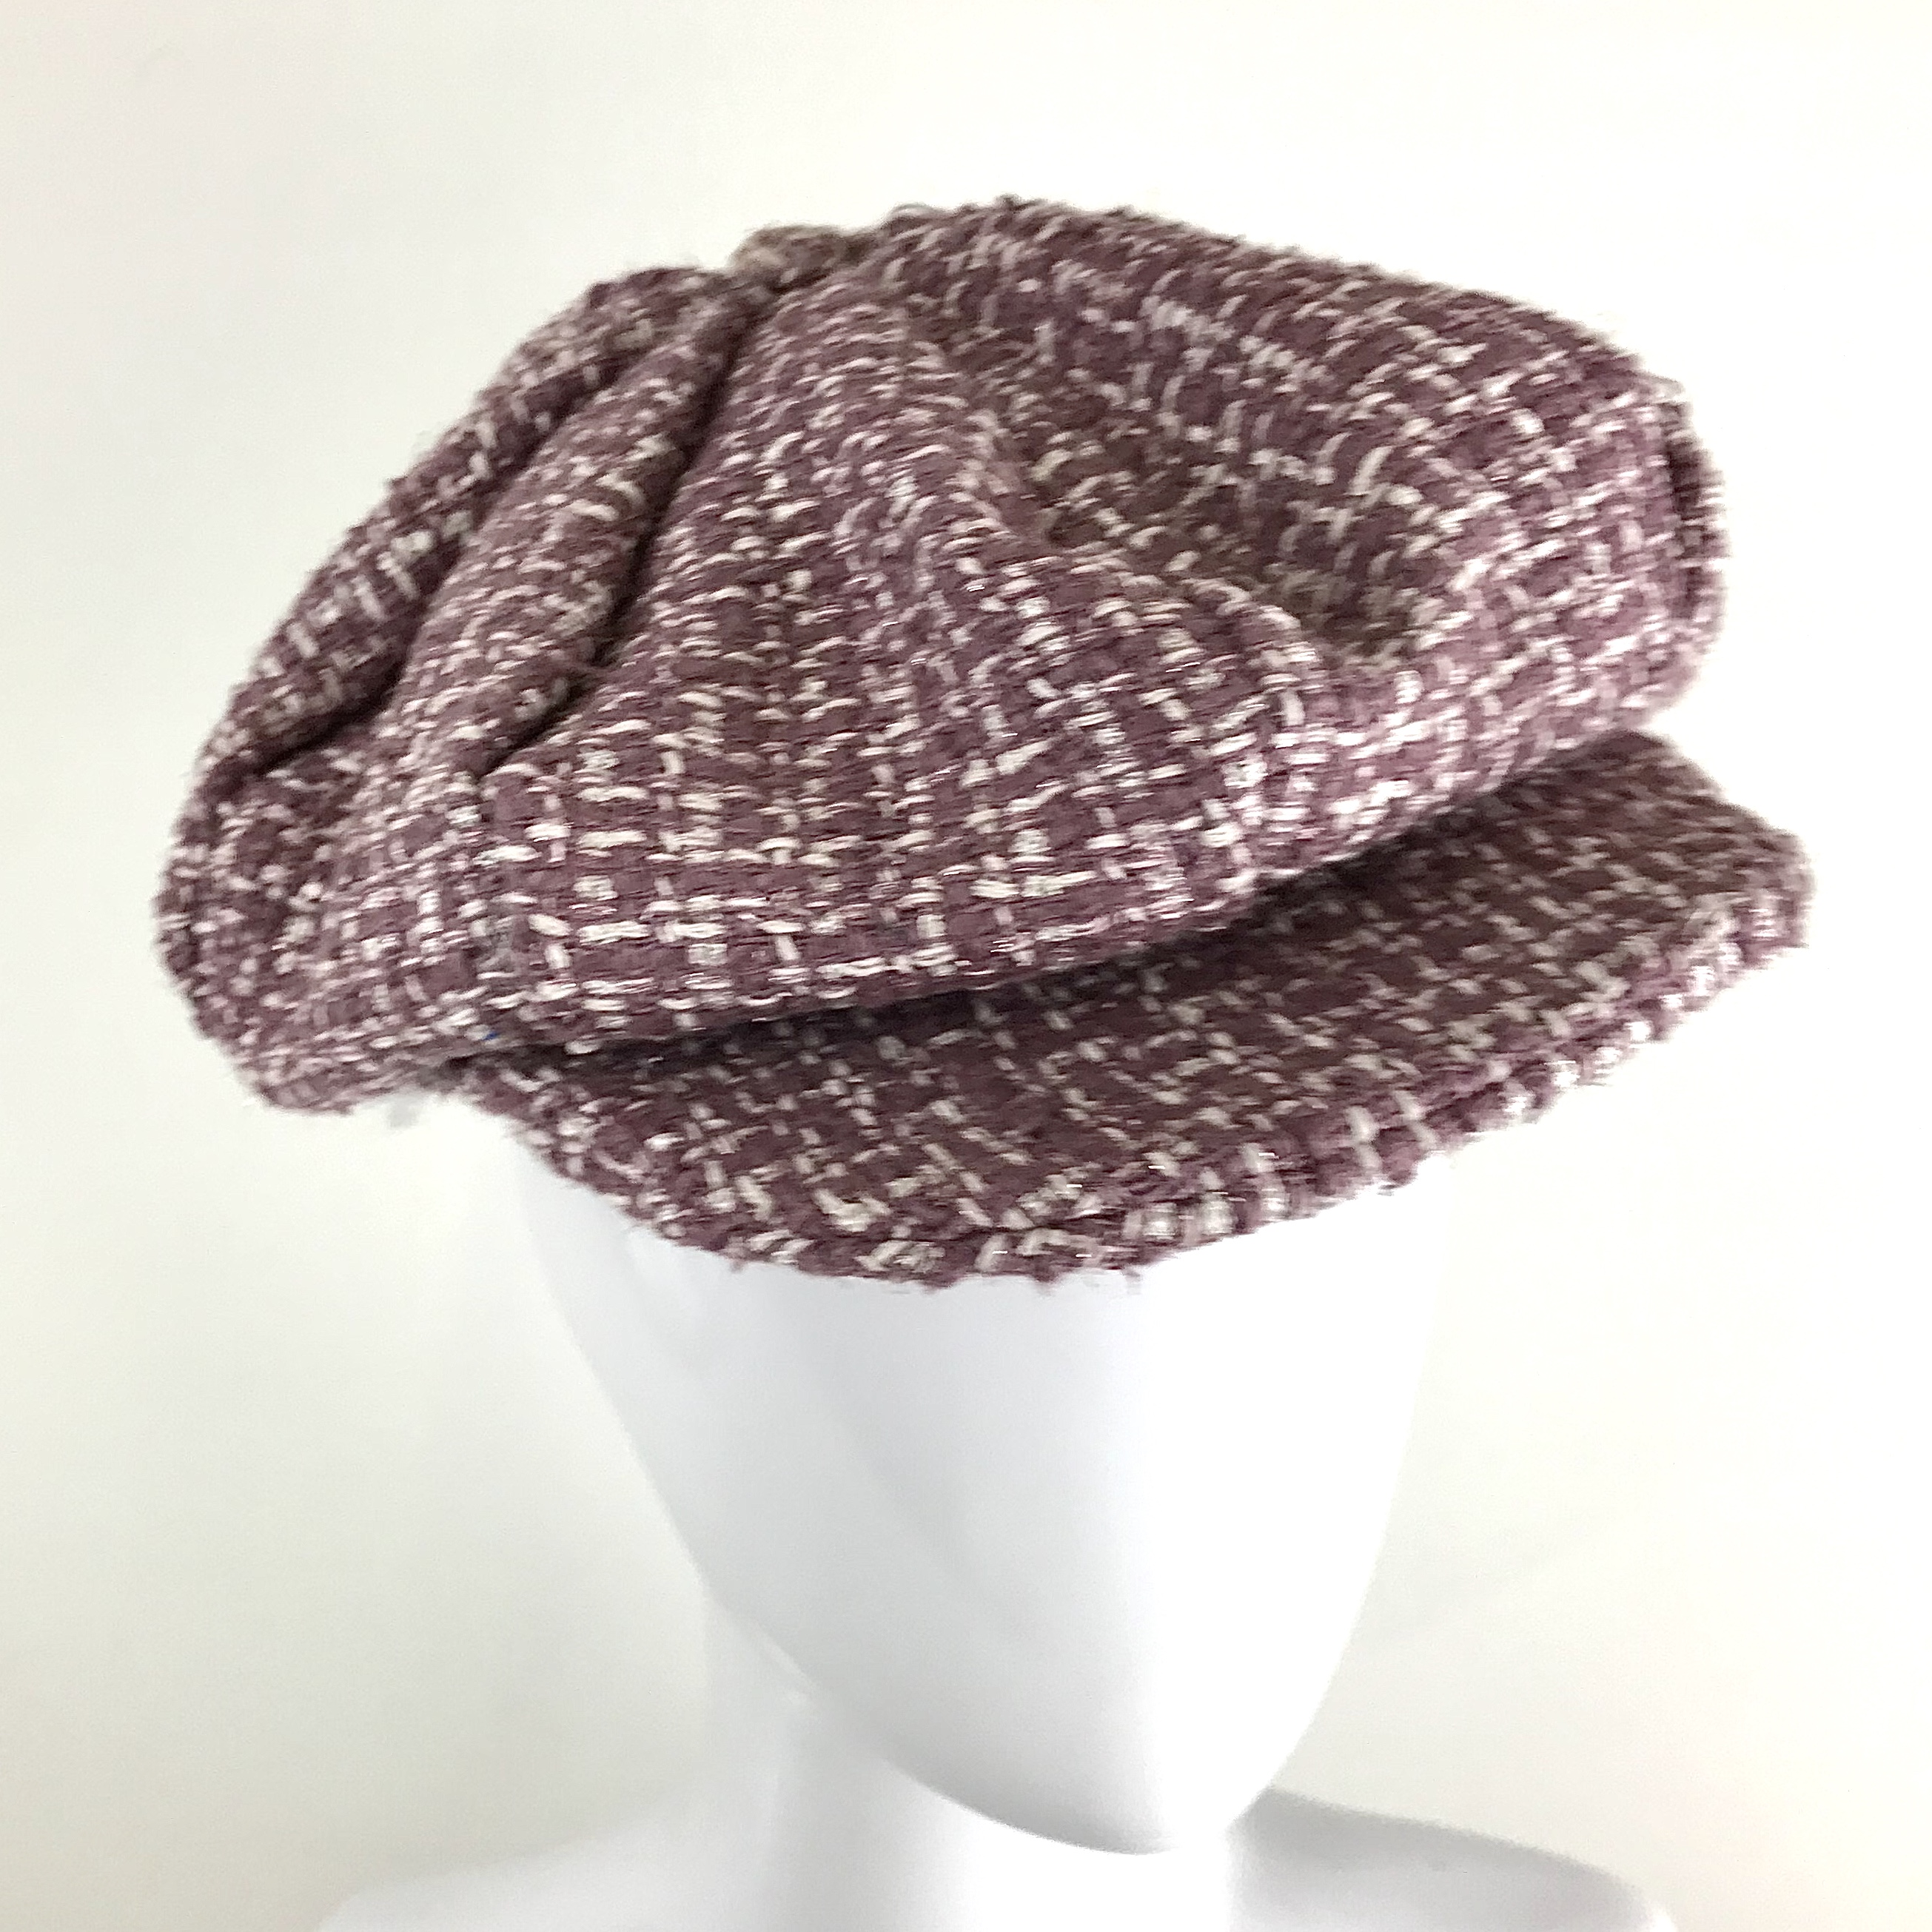 heather linton tweed cap